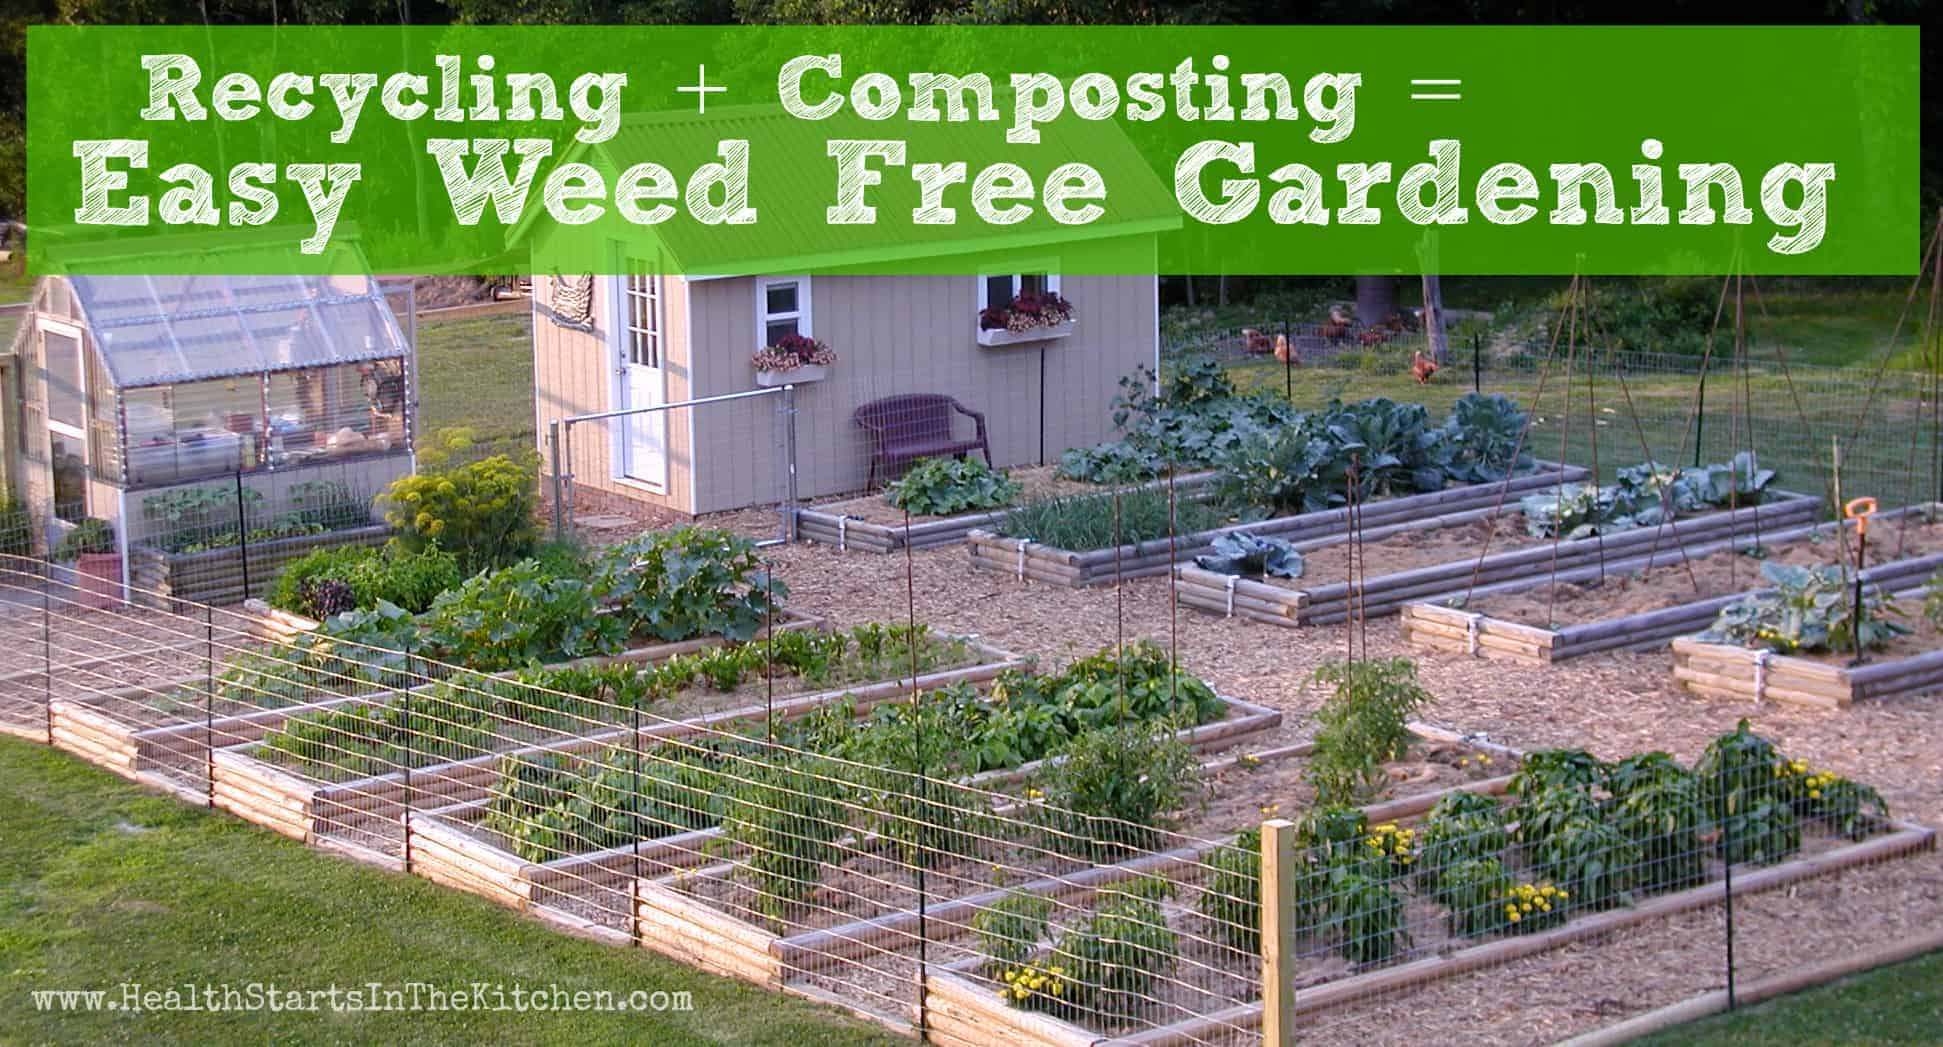 Recycling + Composting = Weed Free Gardening